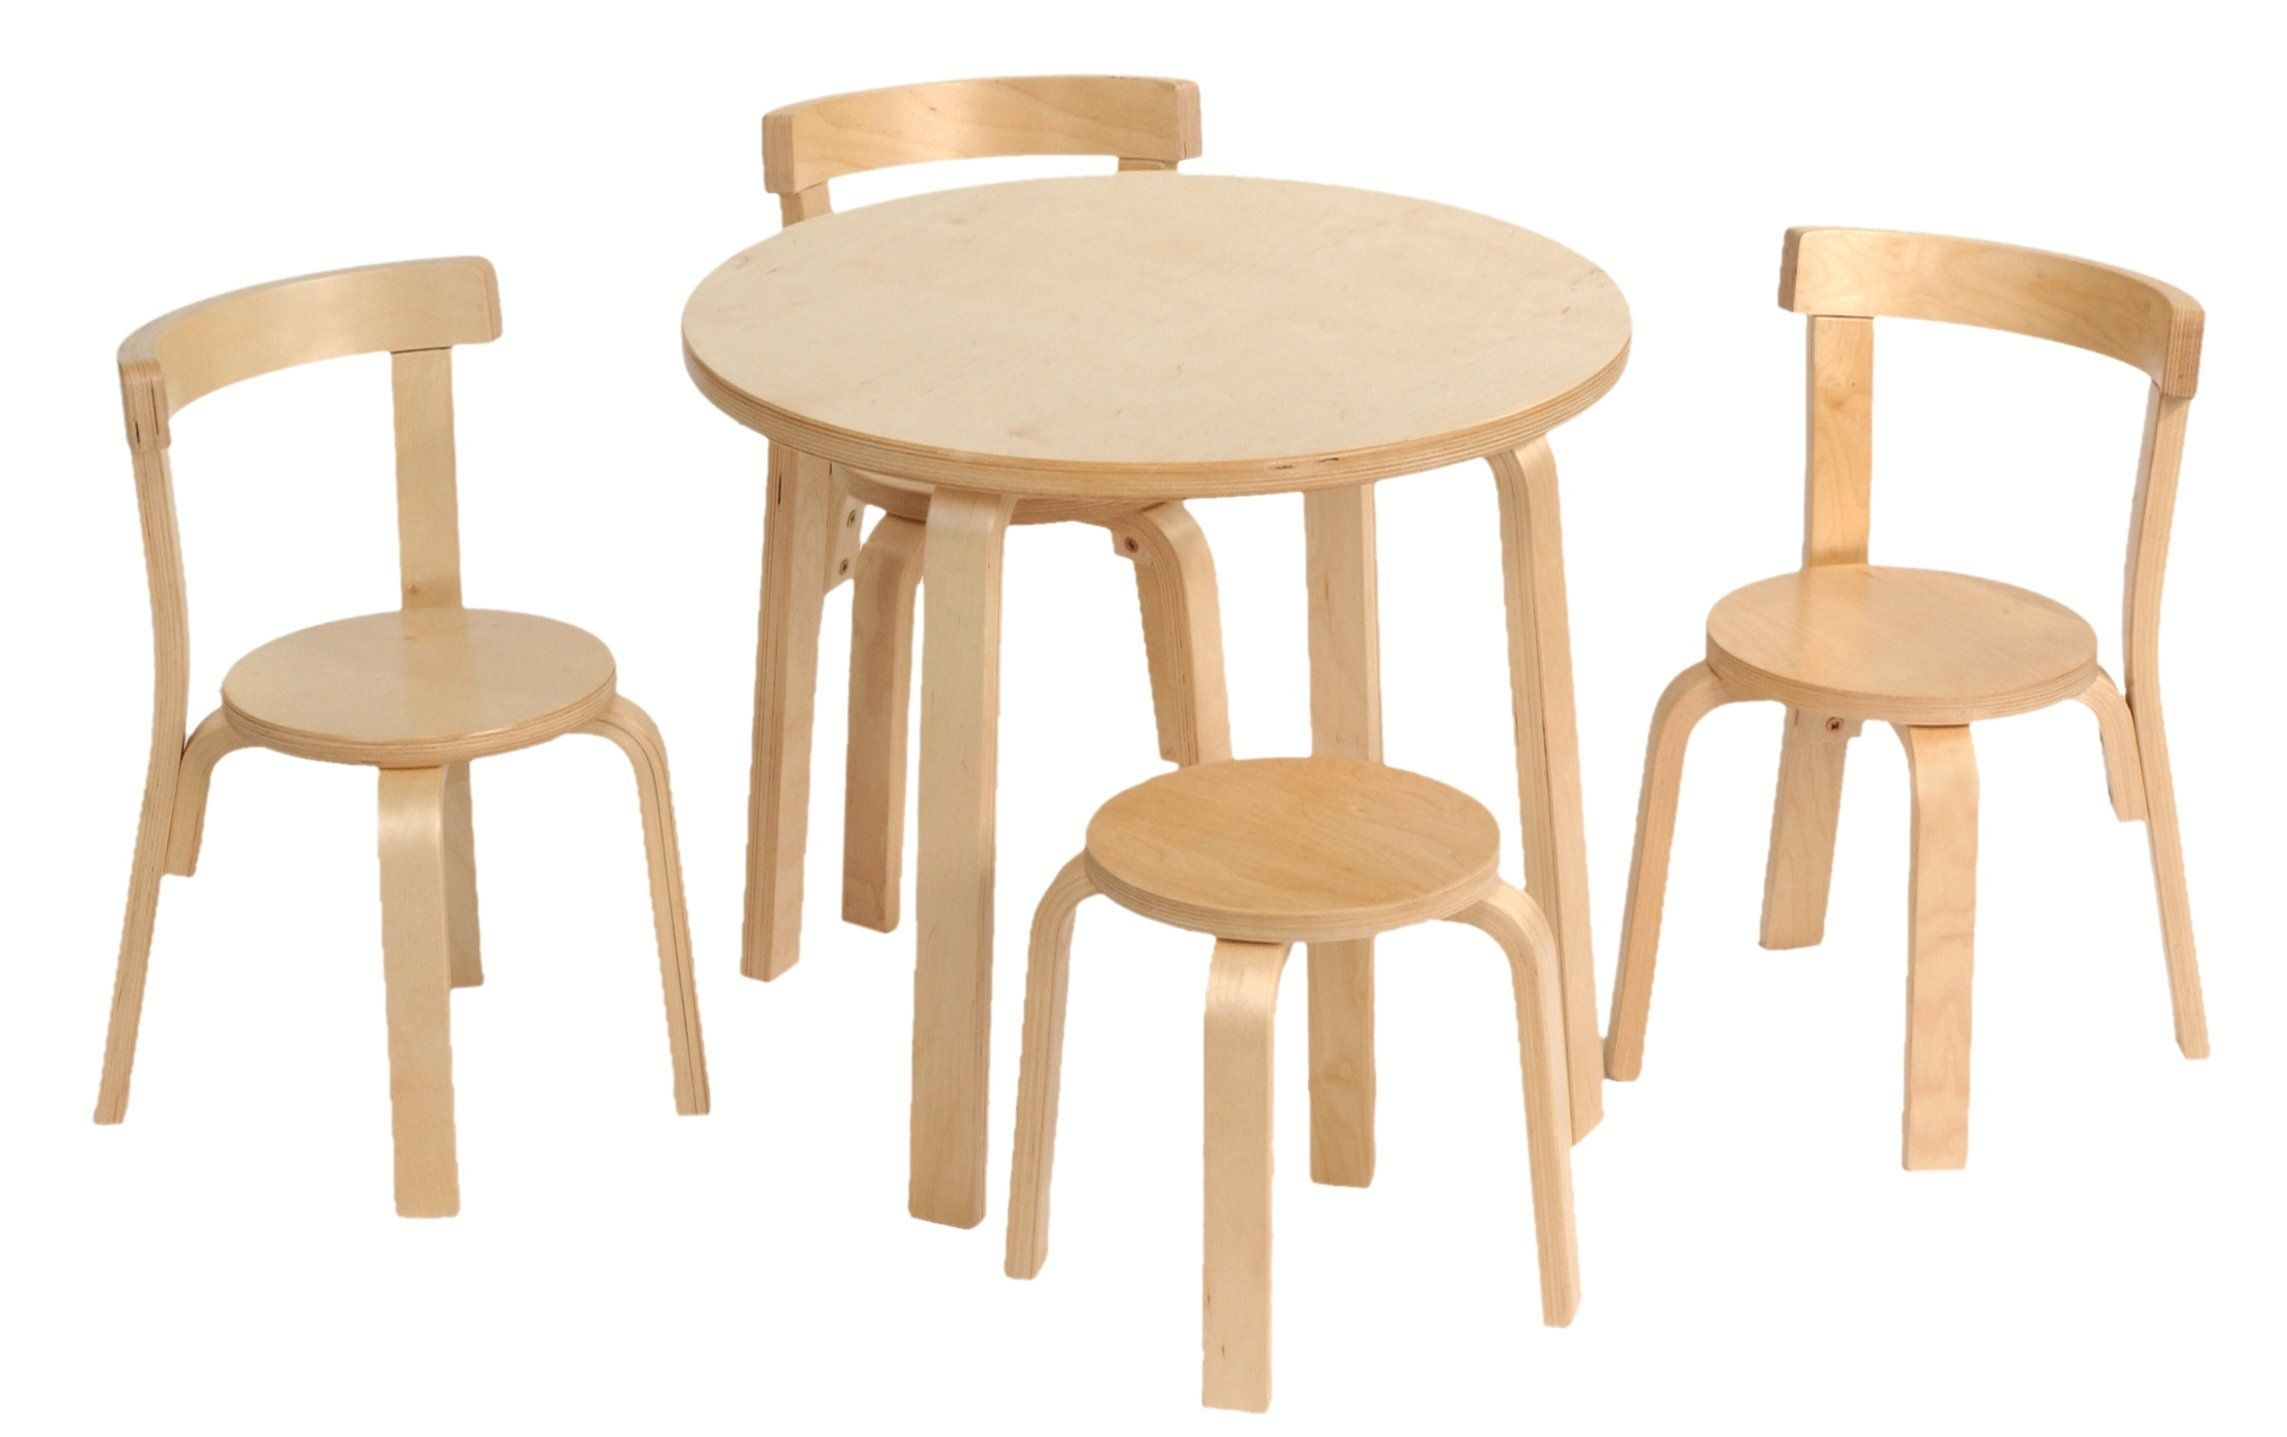 Kids Table and Chair Set - Svan Play with Me Toddler Table Set with ...